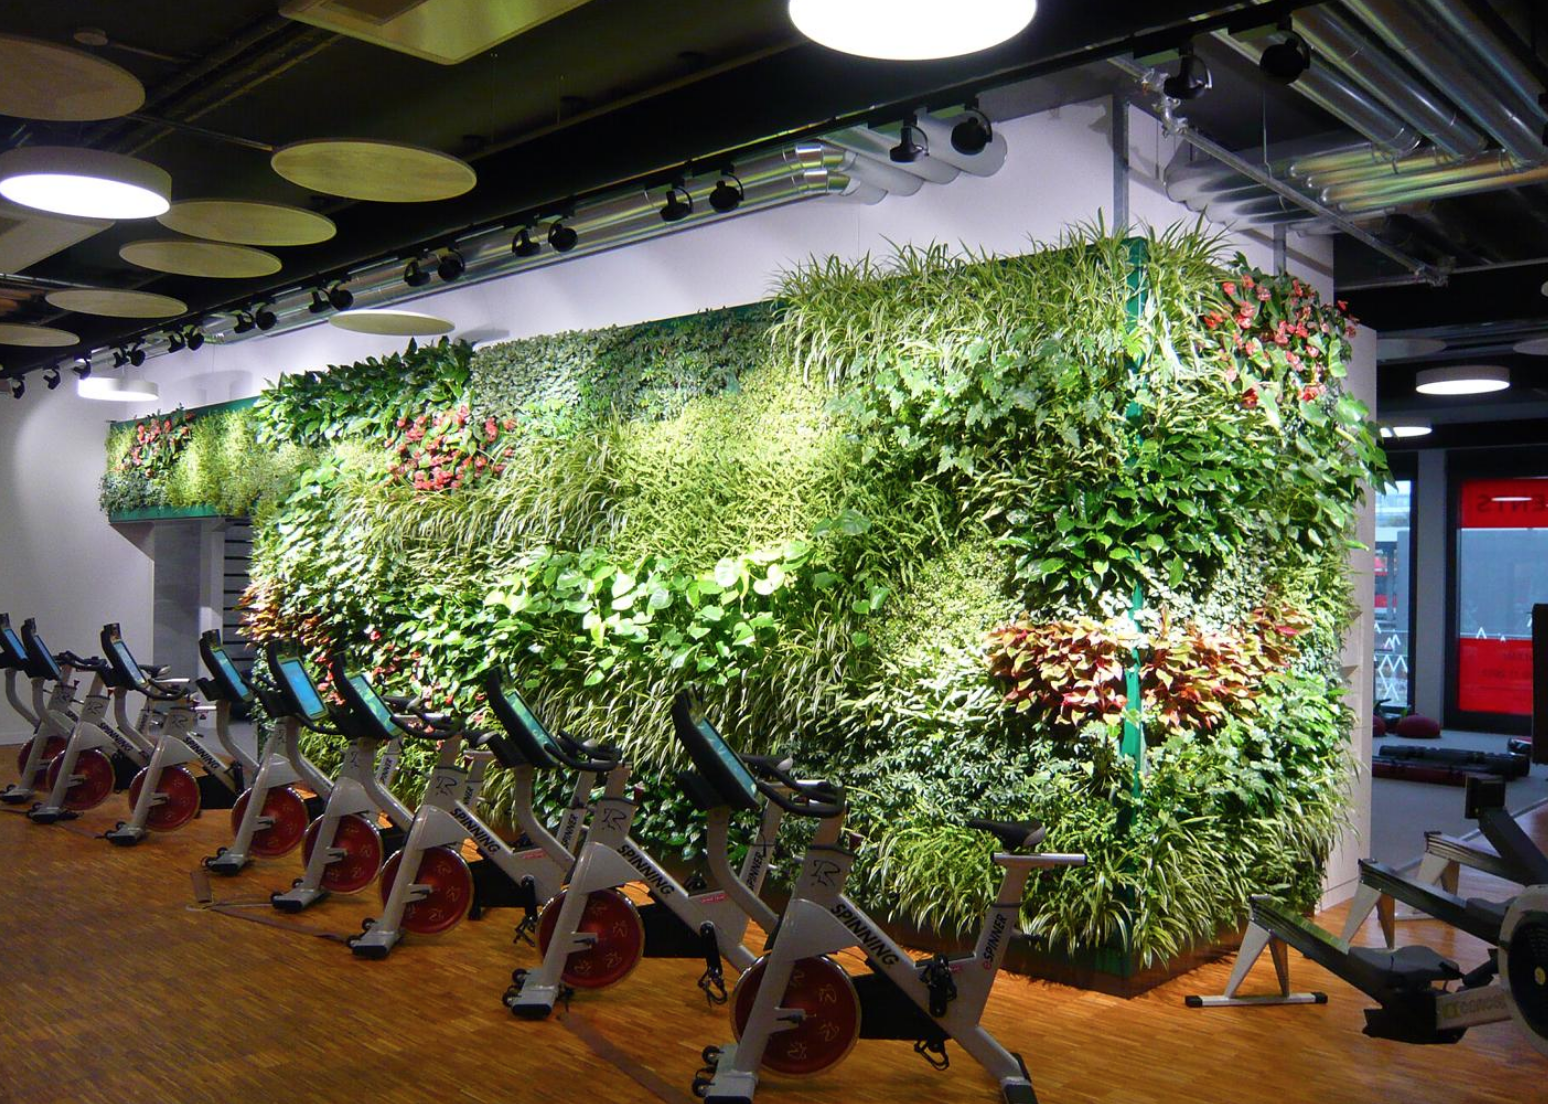 Gorgeous Mobilane Green Wall In A Gym Setting Green Walls Are So Versatile Green Wall Design Green Wall Plant Wall